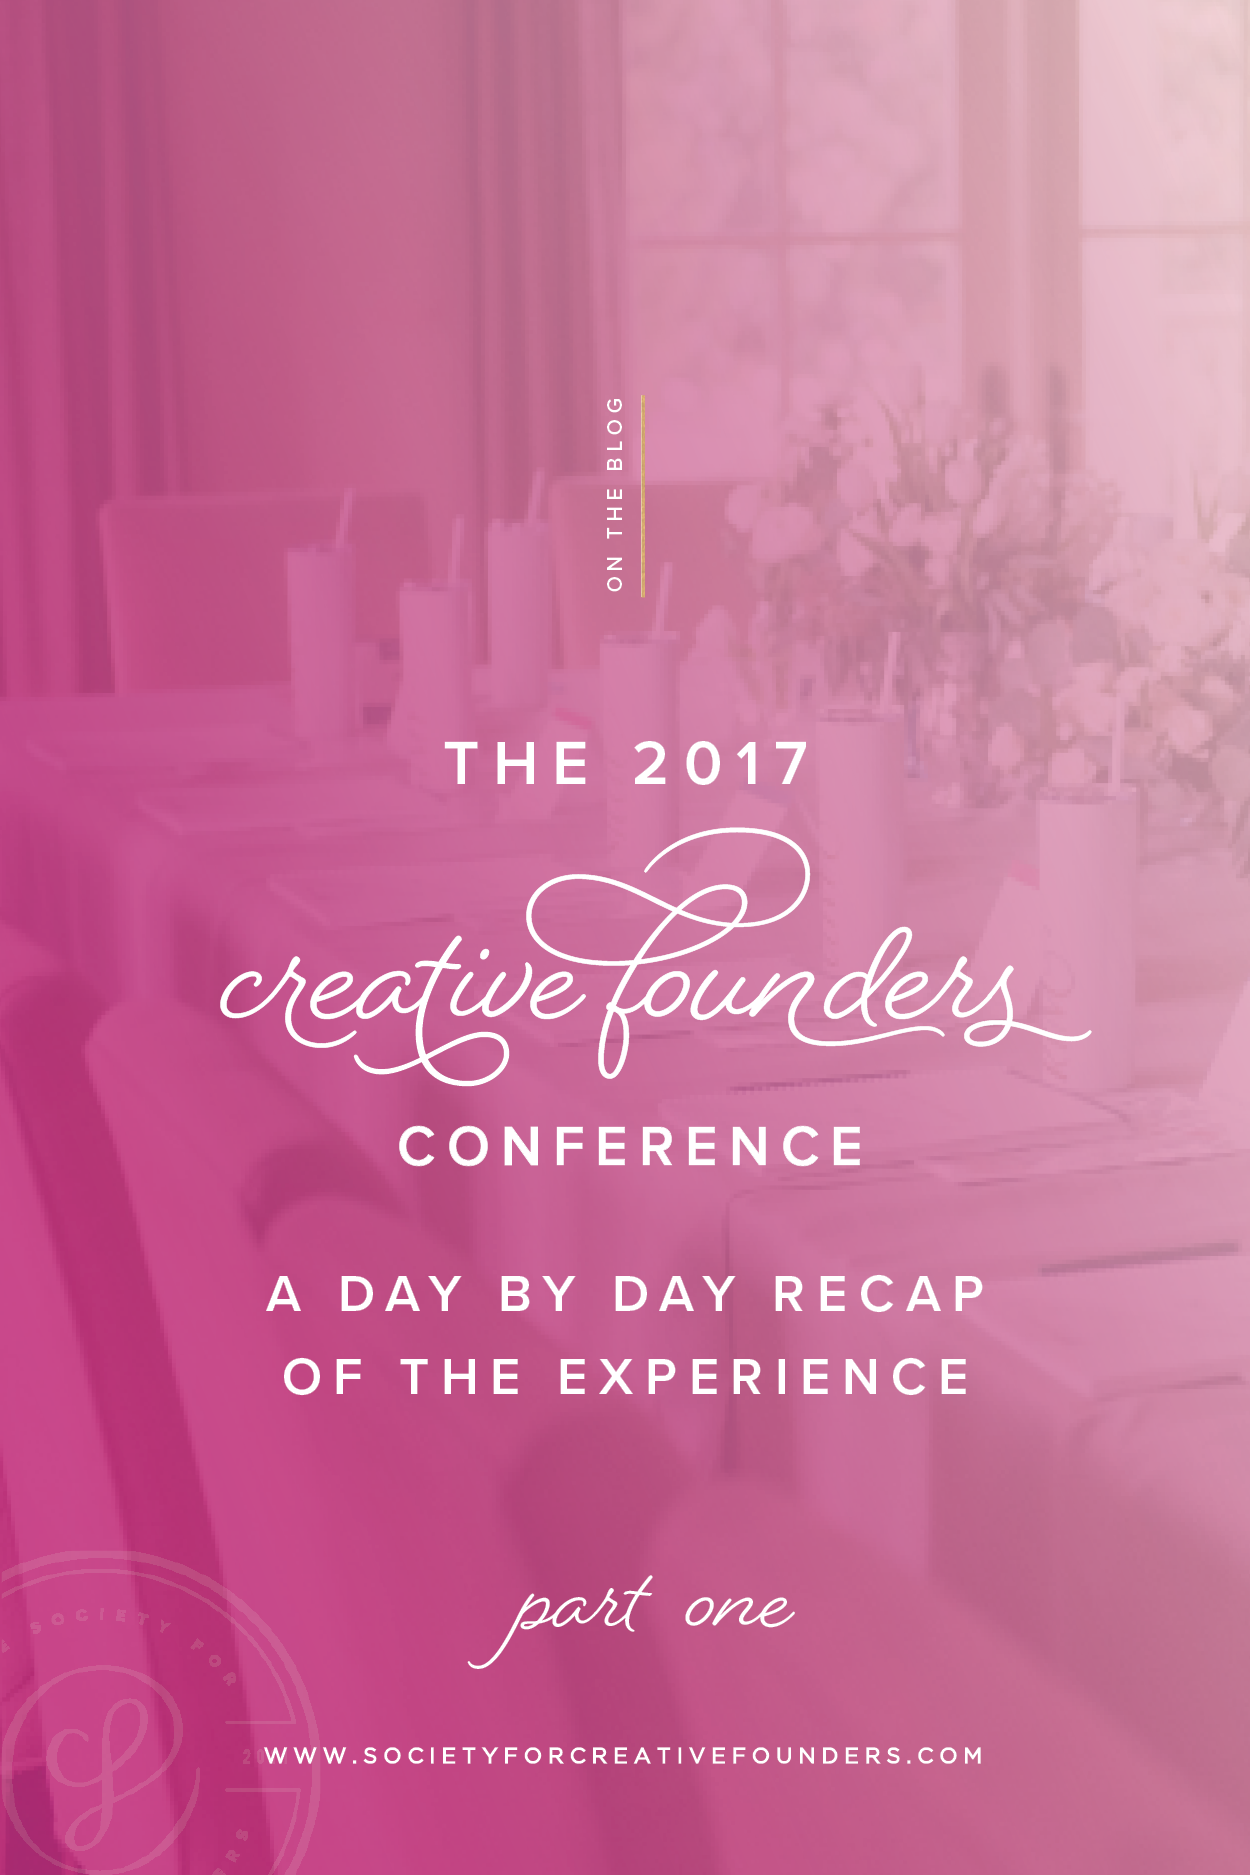 scf - 2018 blog - creative founders conference recap - day 1, 2, 3.png